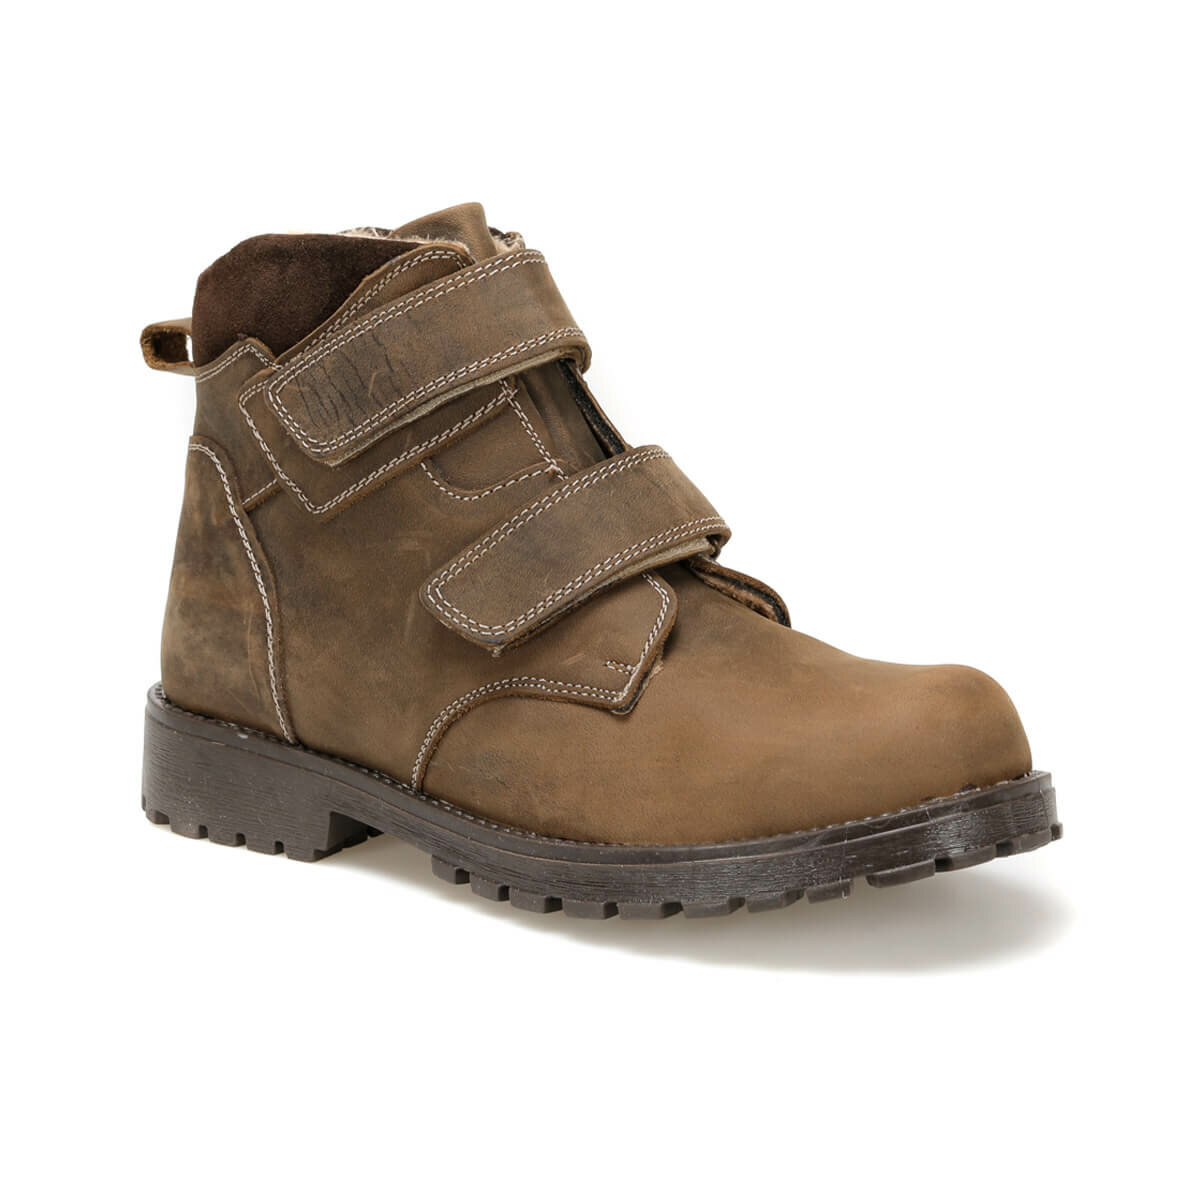 FLO 82.508689.G Sand Color Male Child Boots Polaris